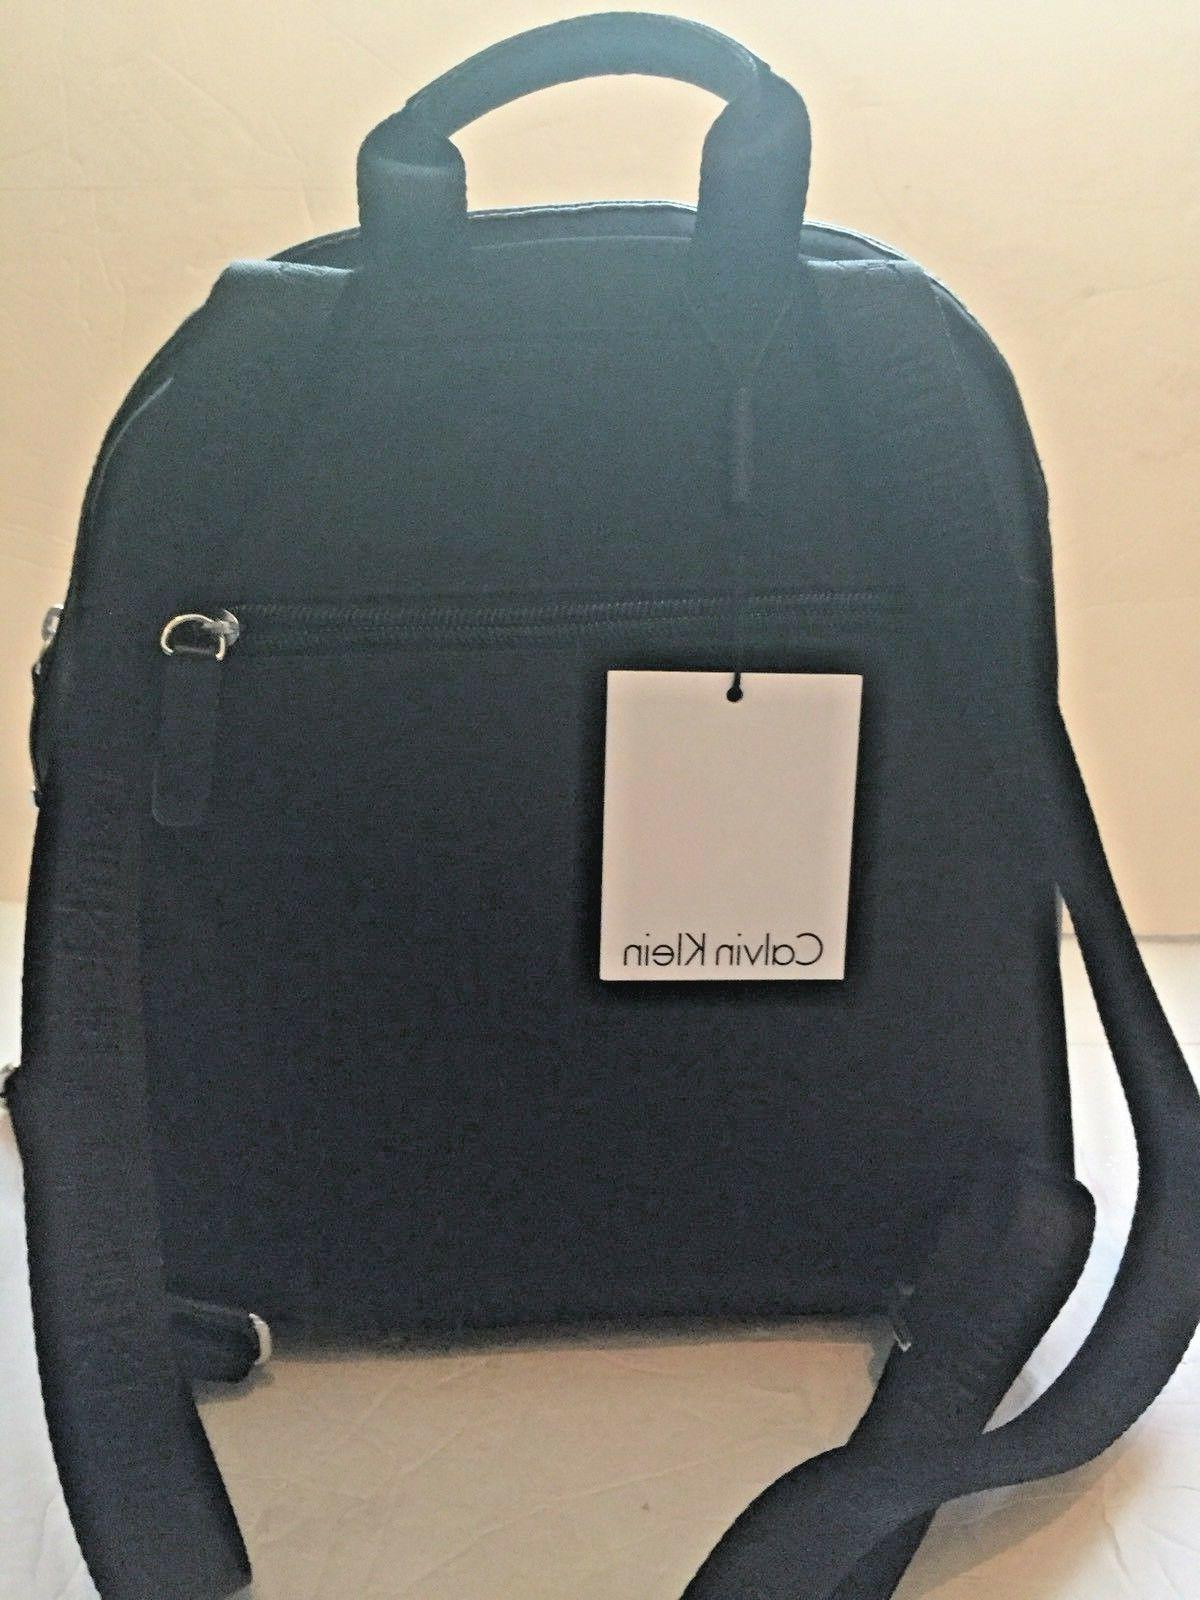 Authentic Black Backpack.